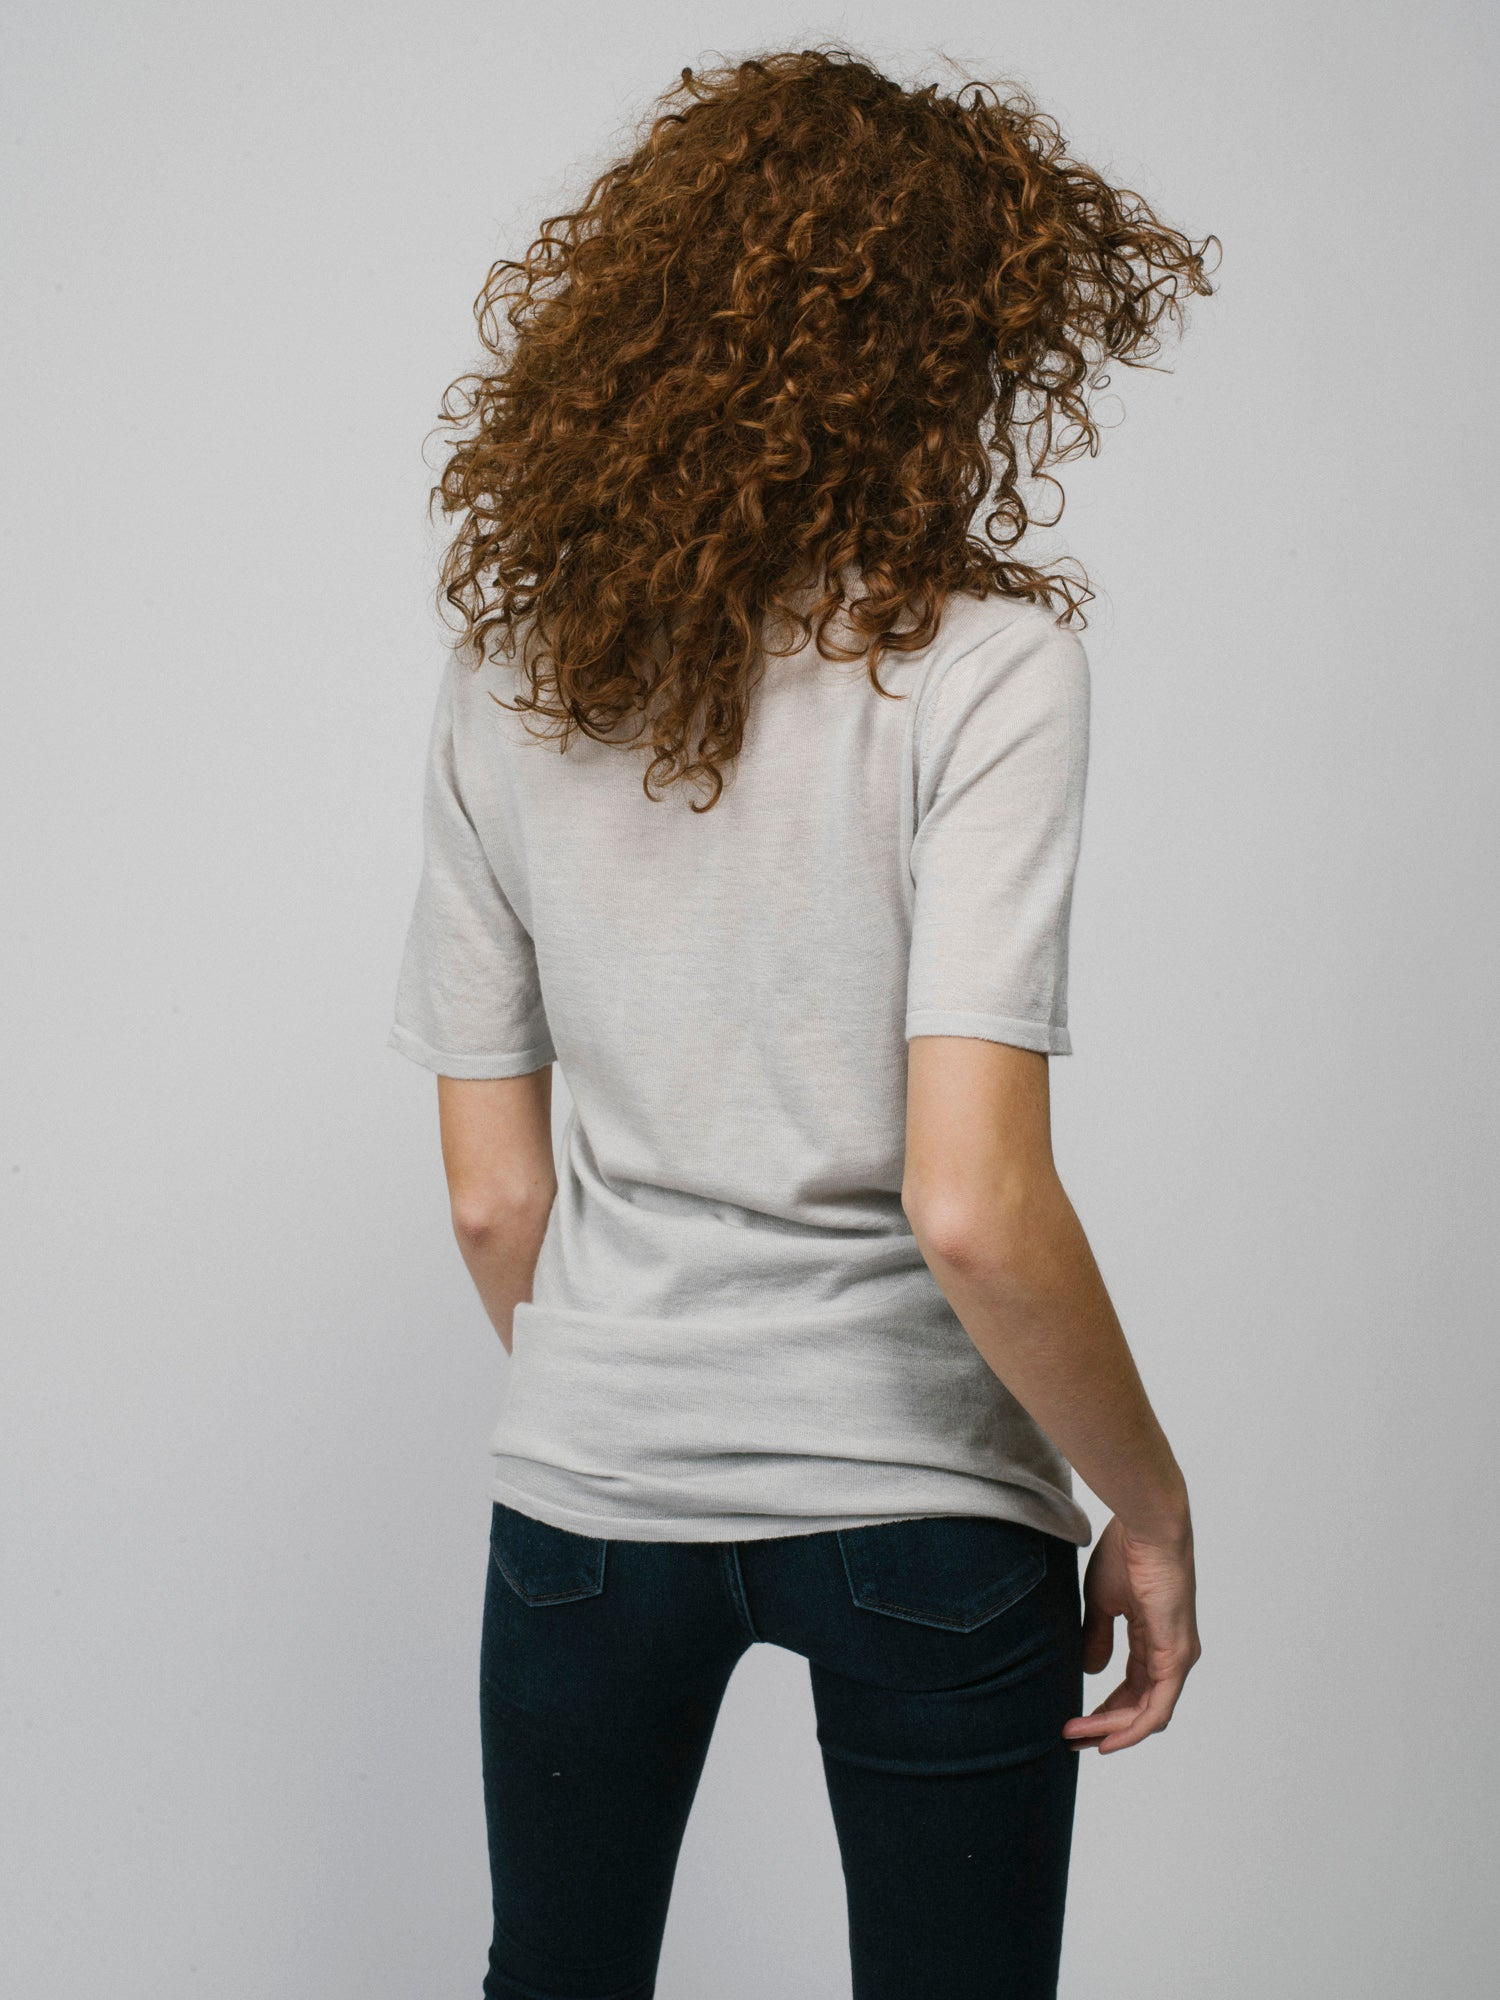 100% Cashmere T-Shirt - Women's Grey